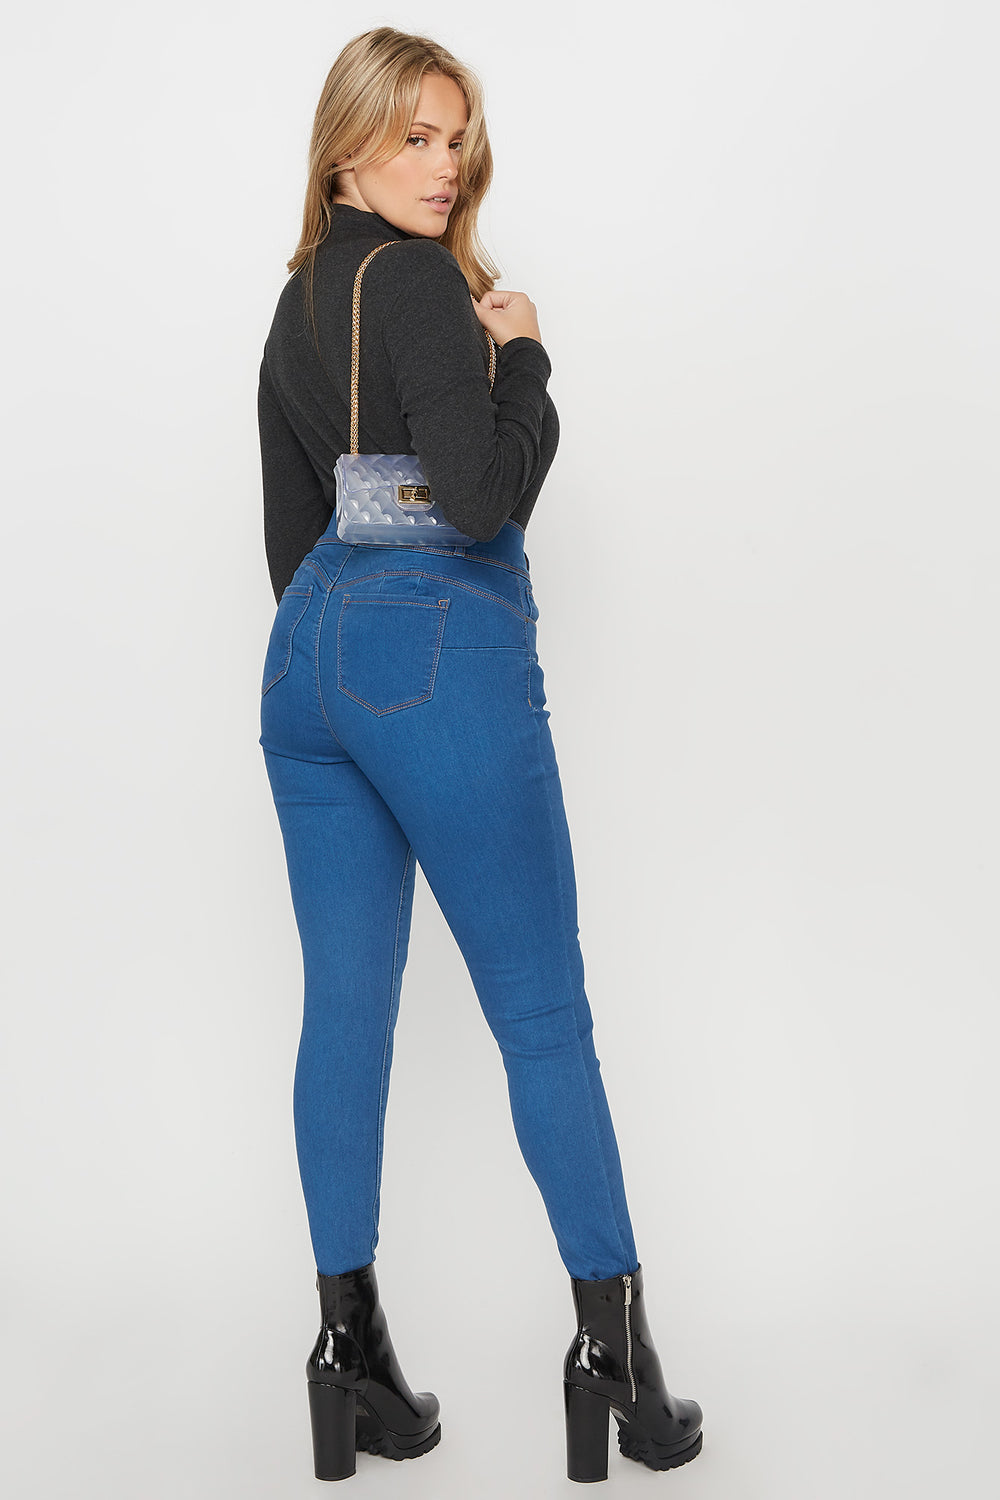 Plus Size Butt, I Love You High-Rise Push-Up Skinny Jean Medium Blue